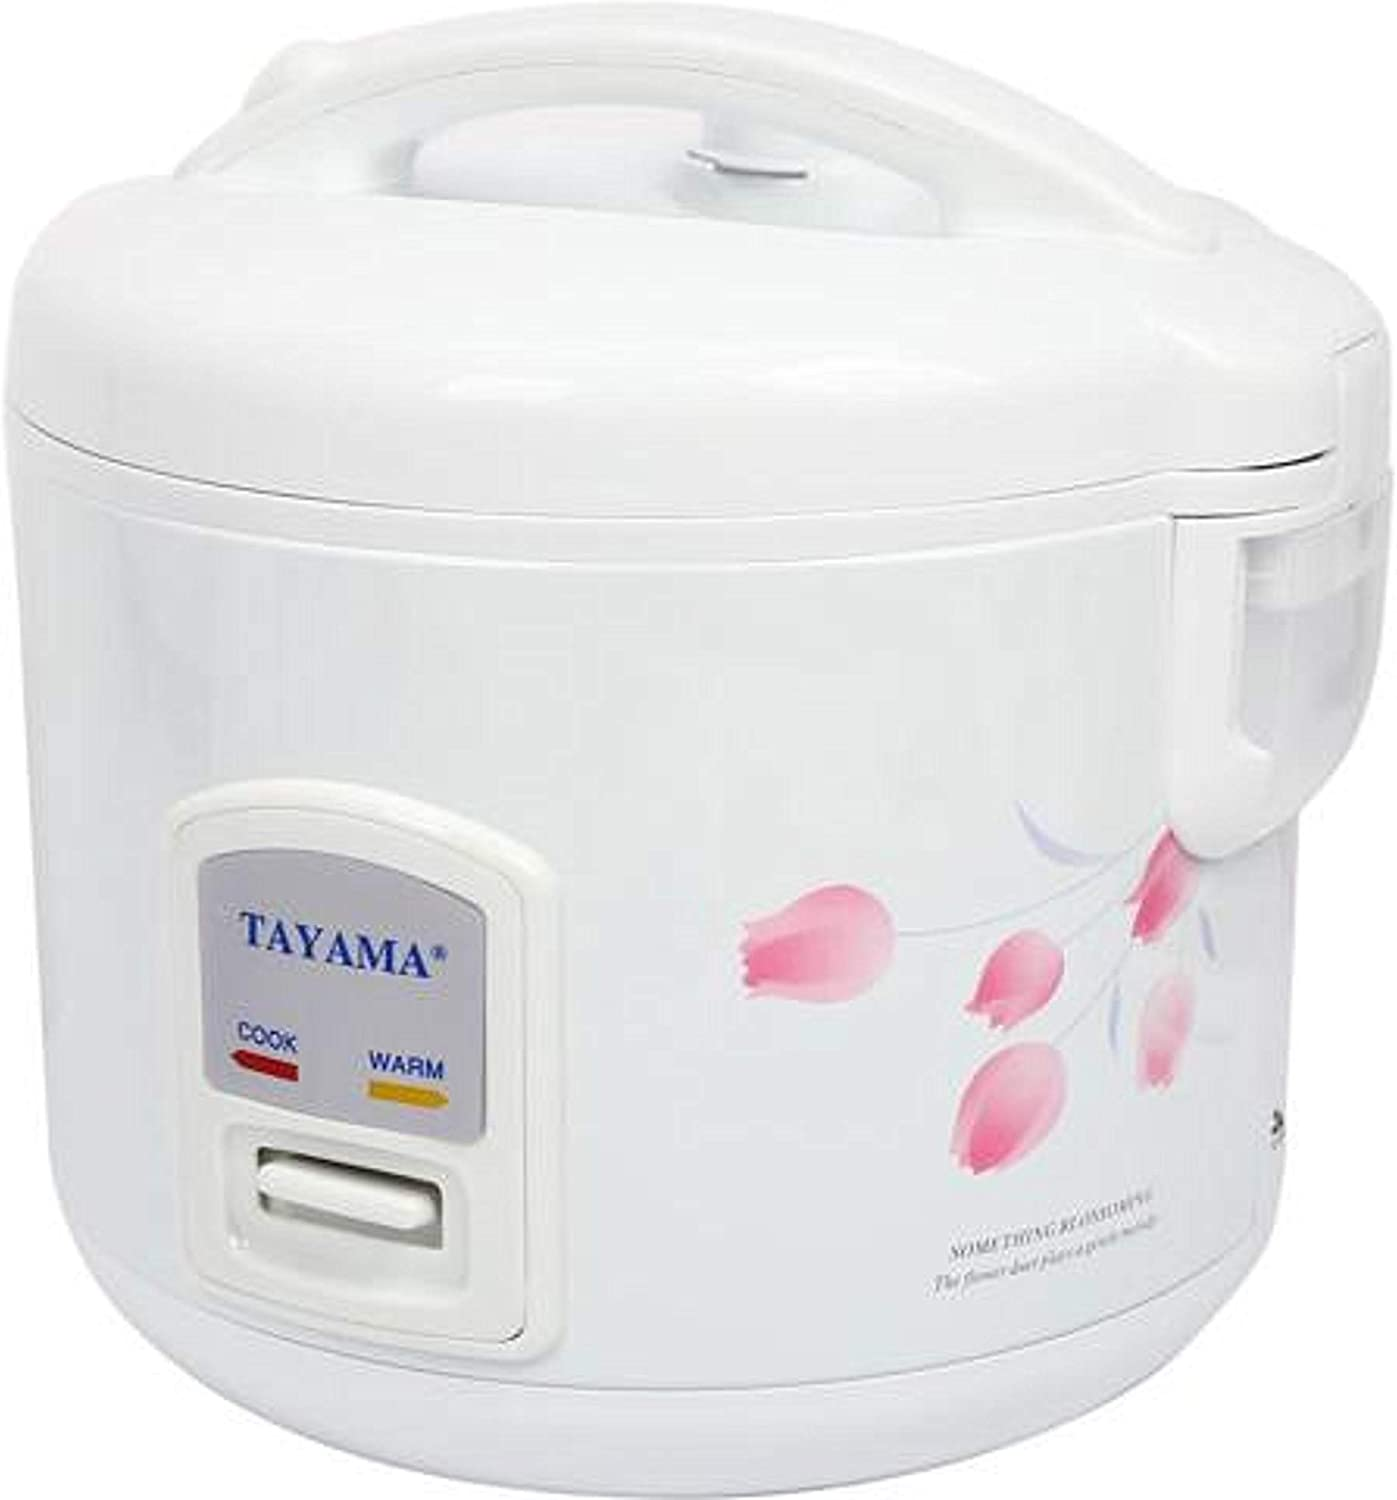 Tayama Automatic Rice Cooker & Food Steamer 8 Cup, White, TRC-08R, TRC-08R, TRC-08R, TRC-08R